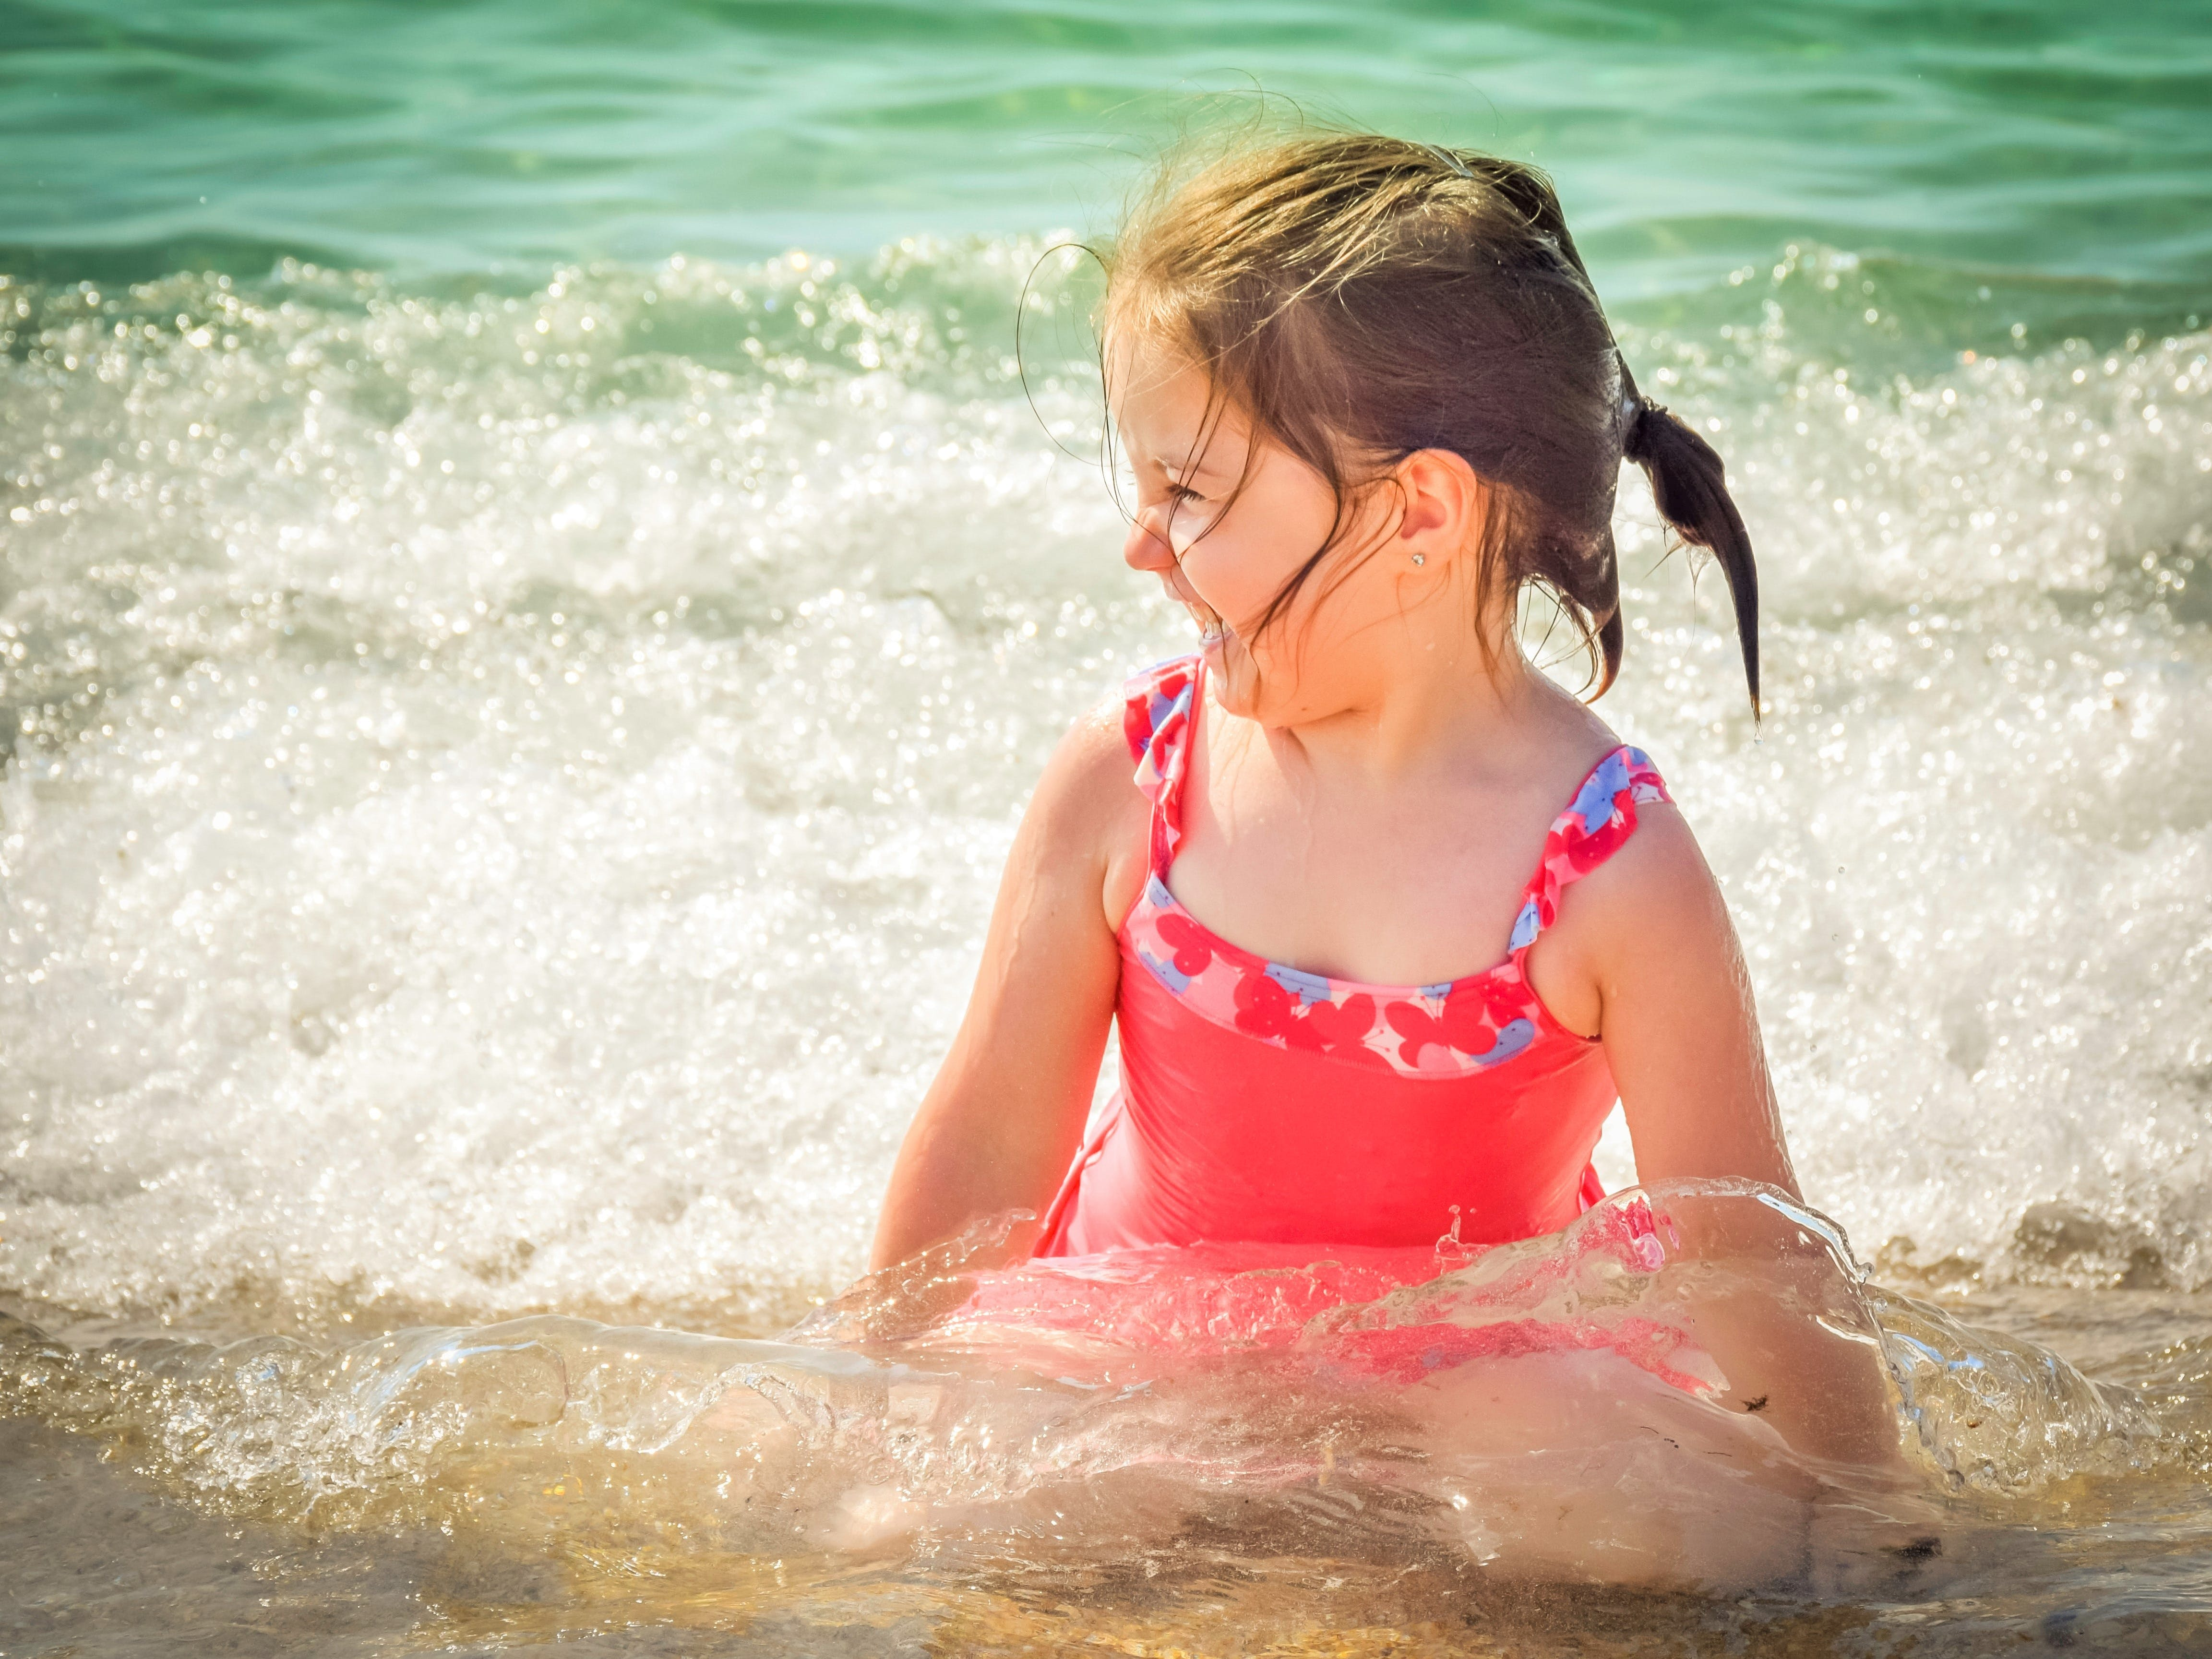 beach, child, enjoyment